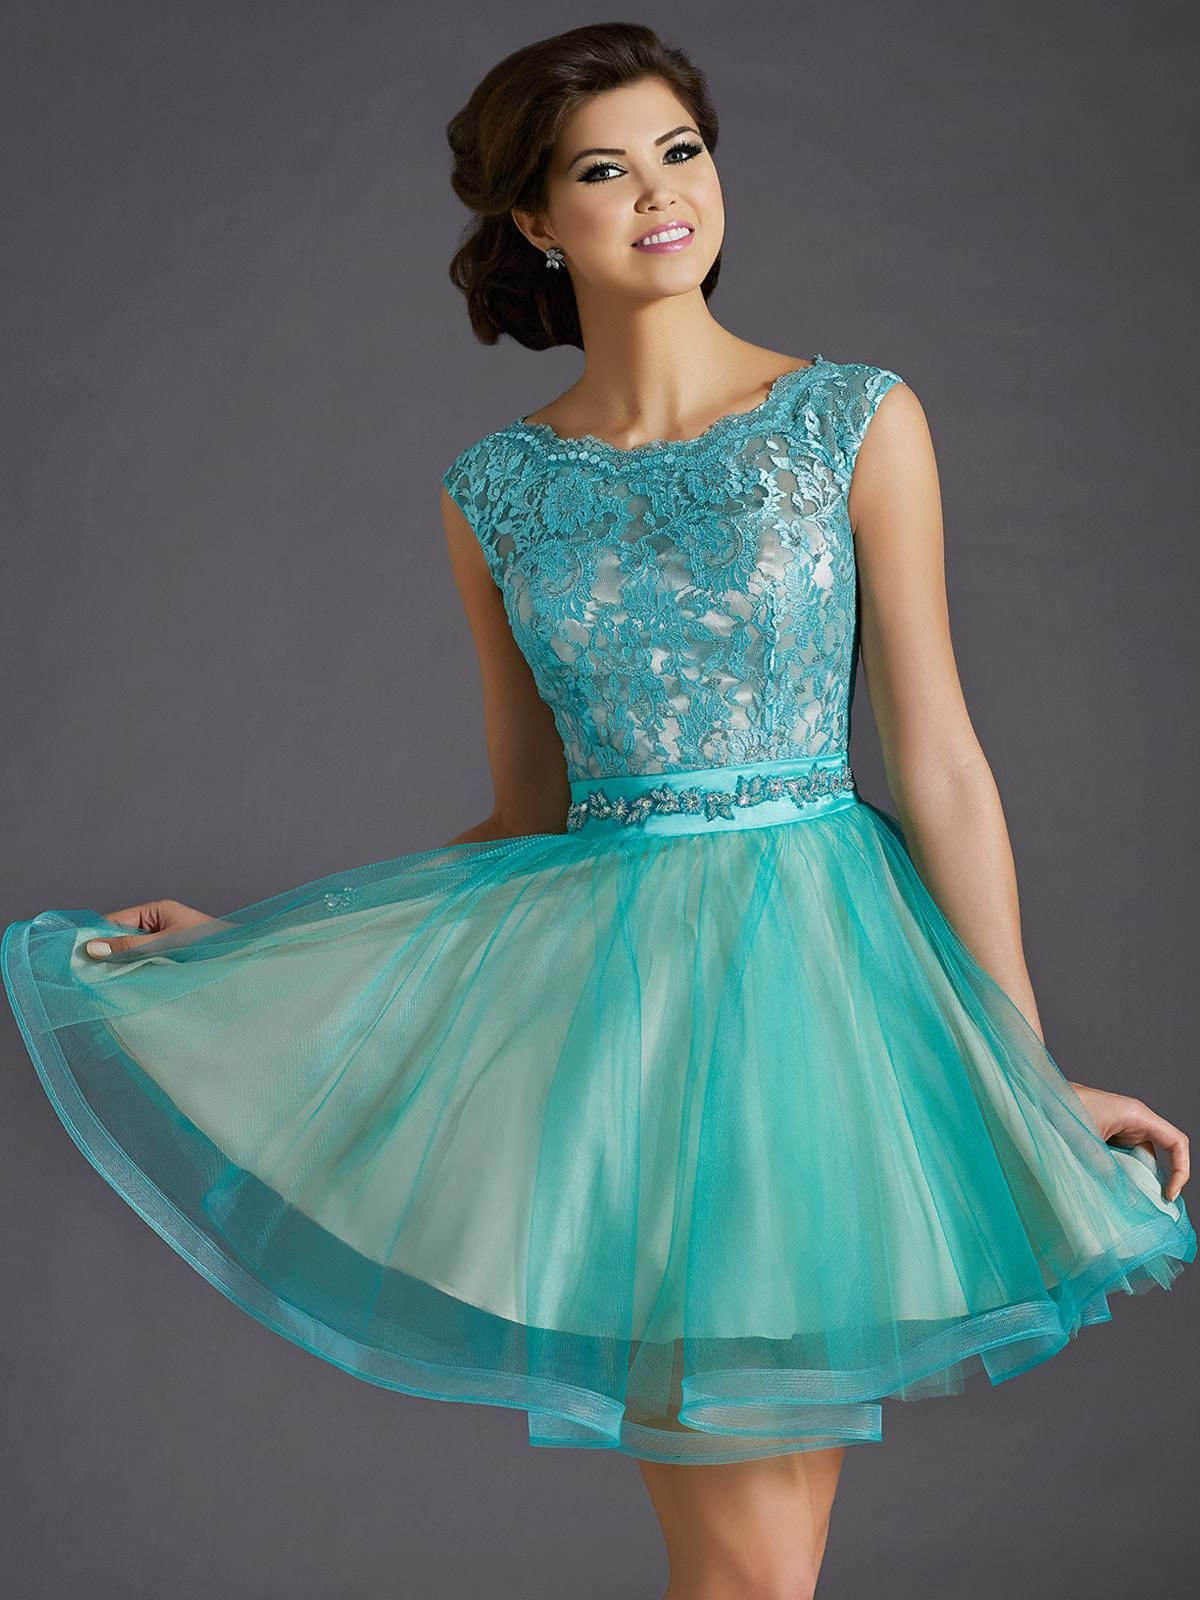 Clarisse Designs 2015 Homecoming Collection: Mint & Nude/ Sizes 00 ...